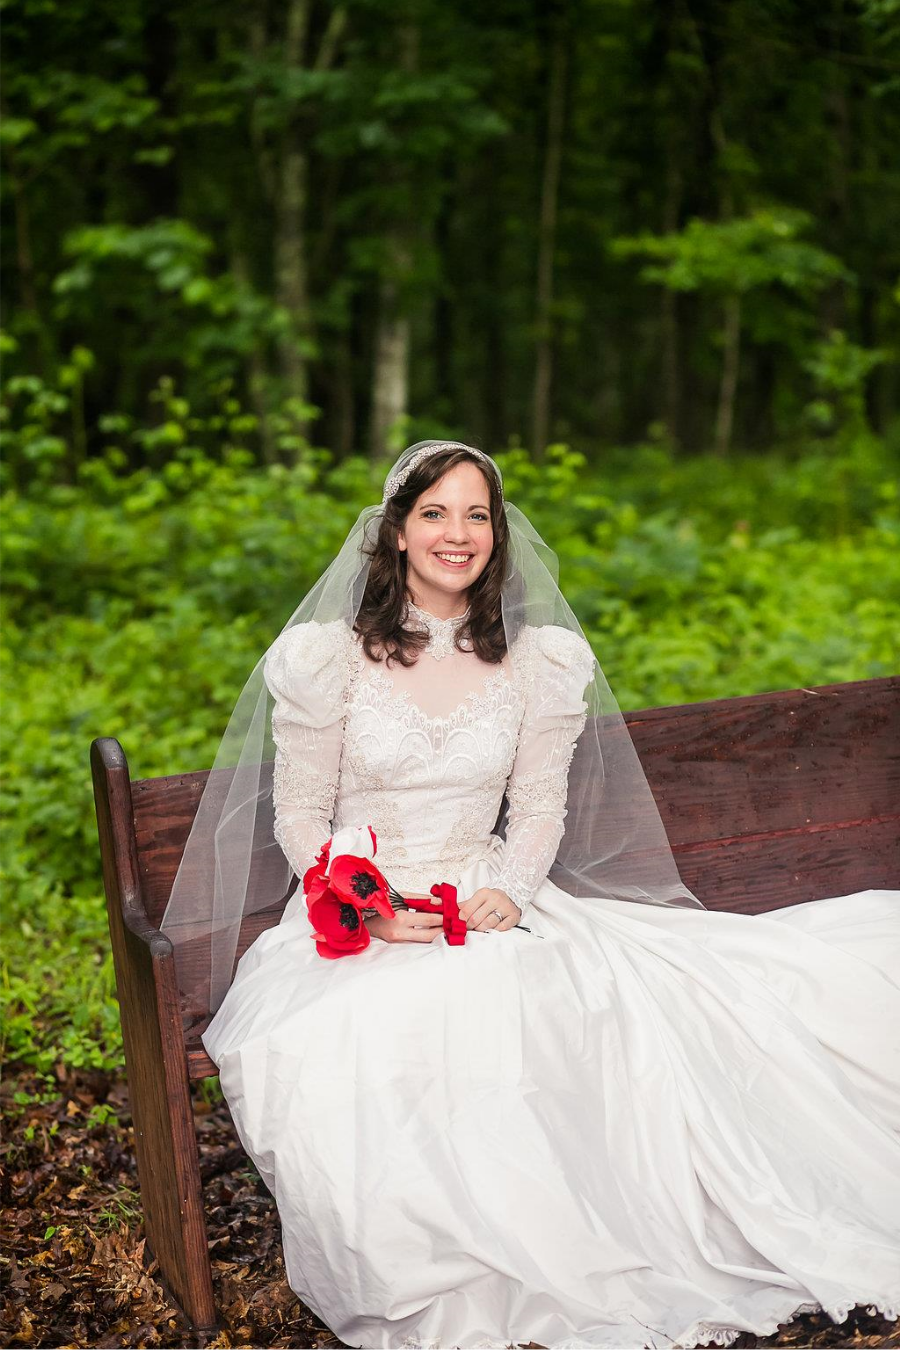 Bride on Bench.png